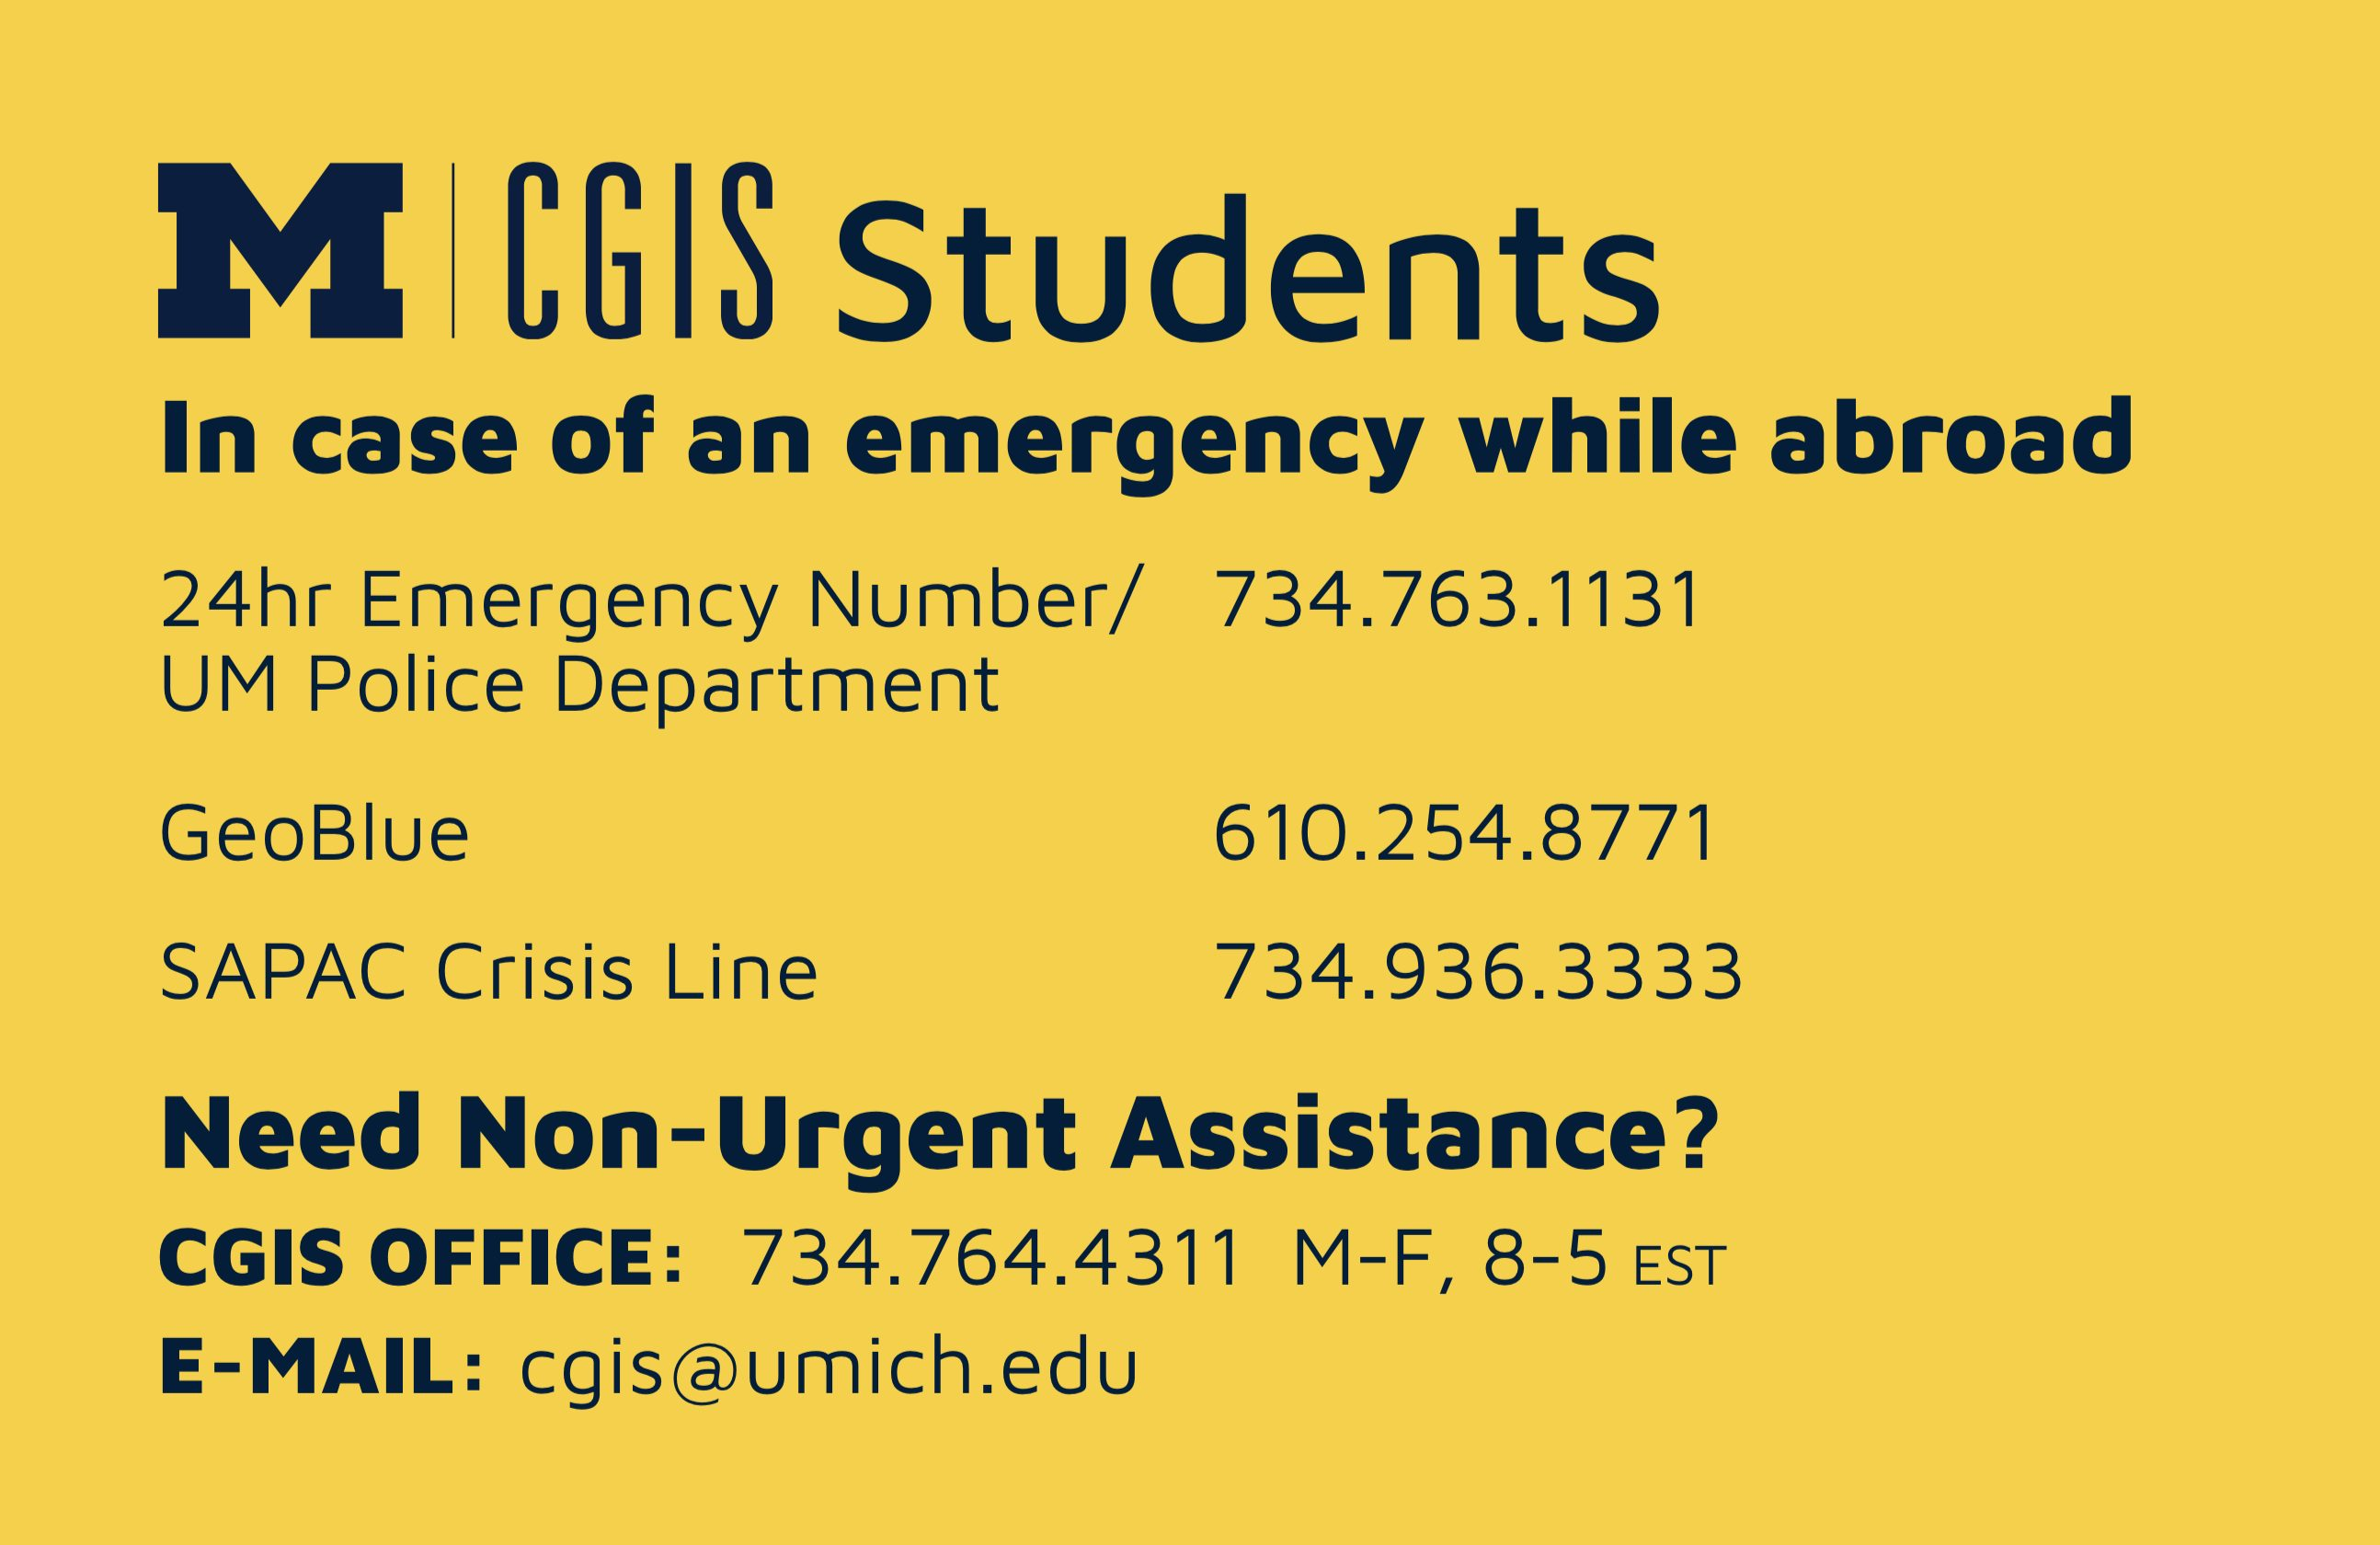 image of emergency card